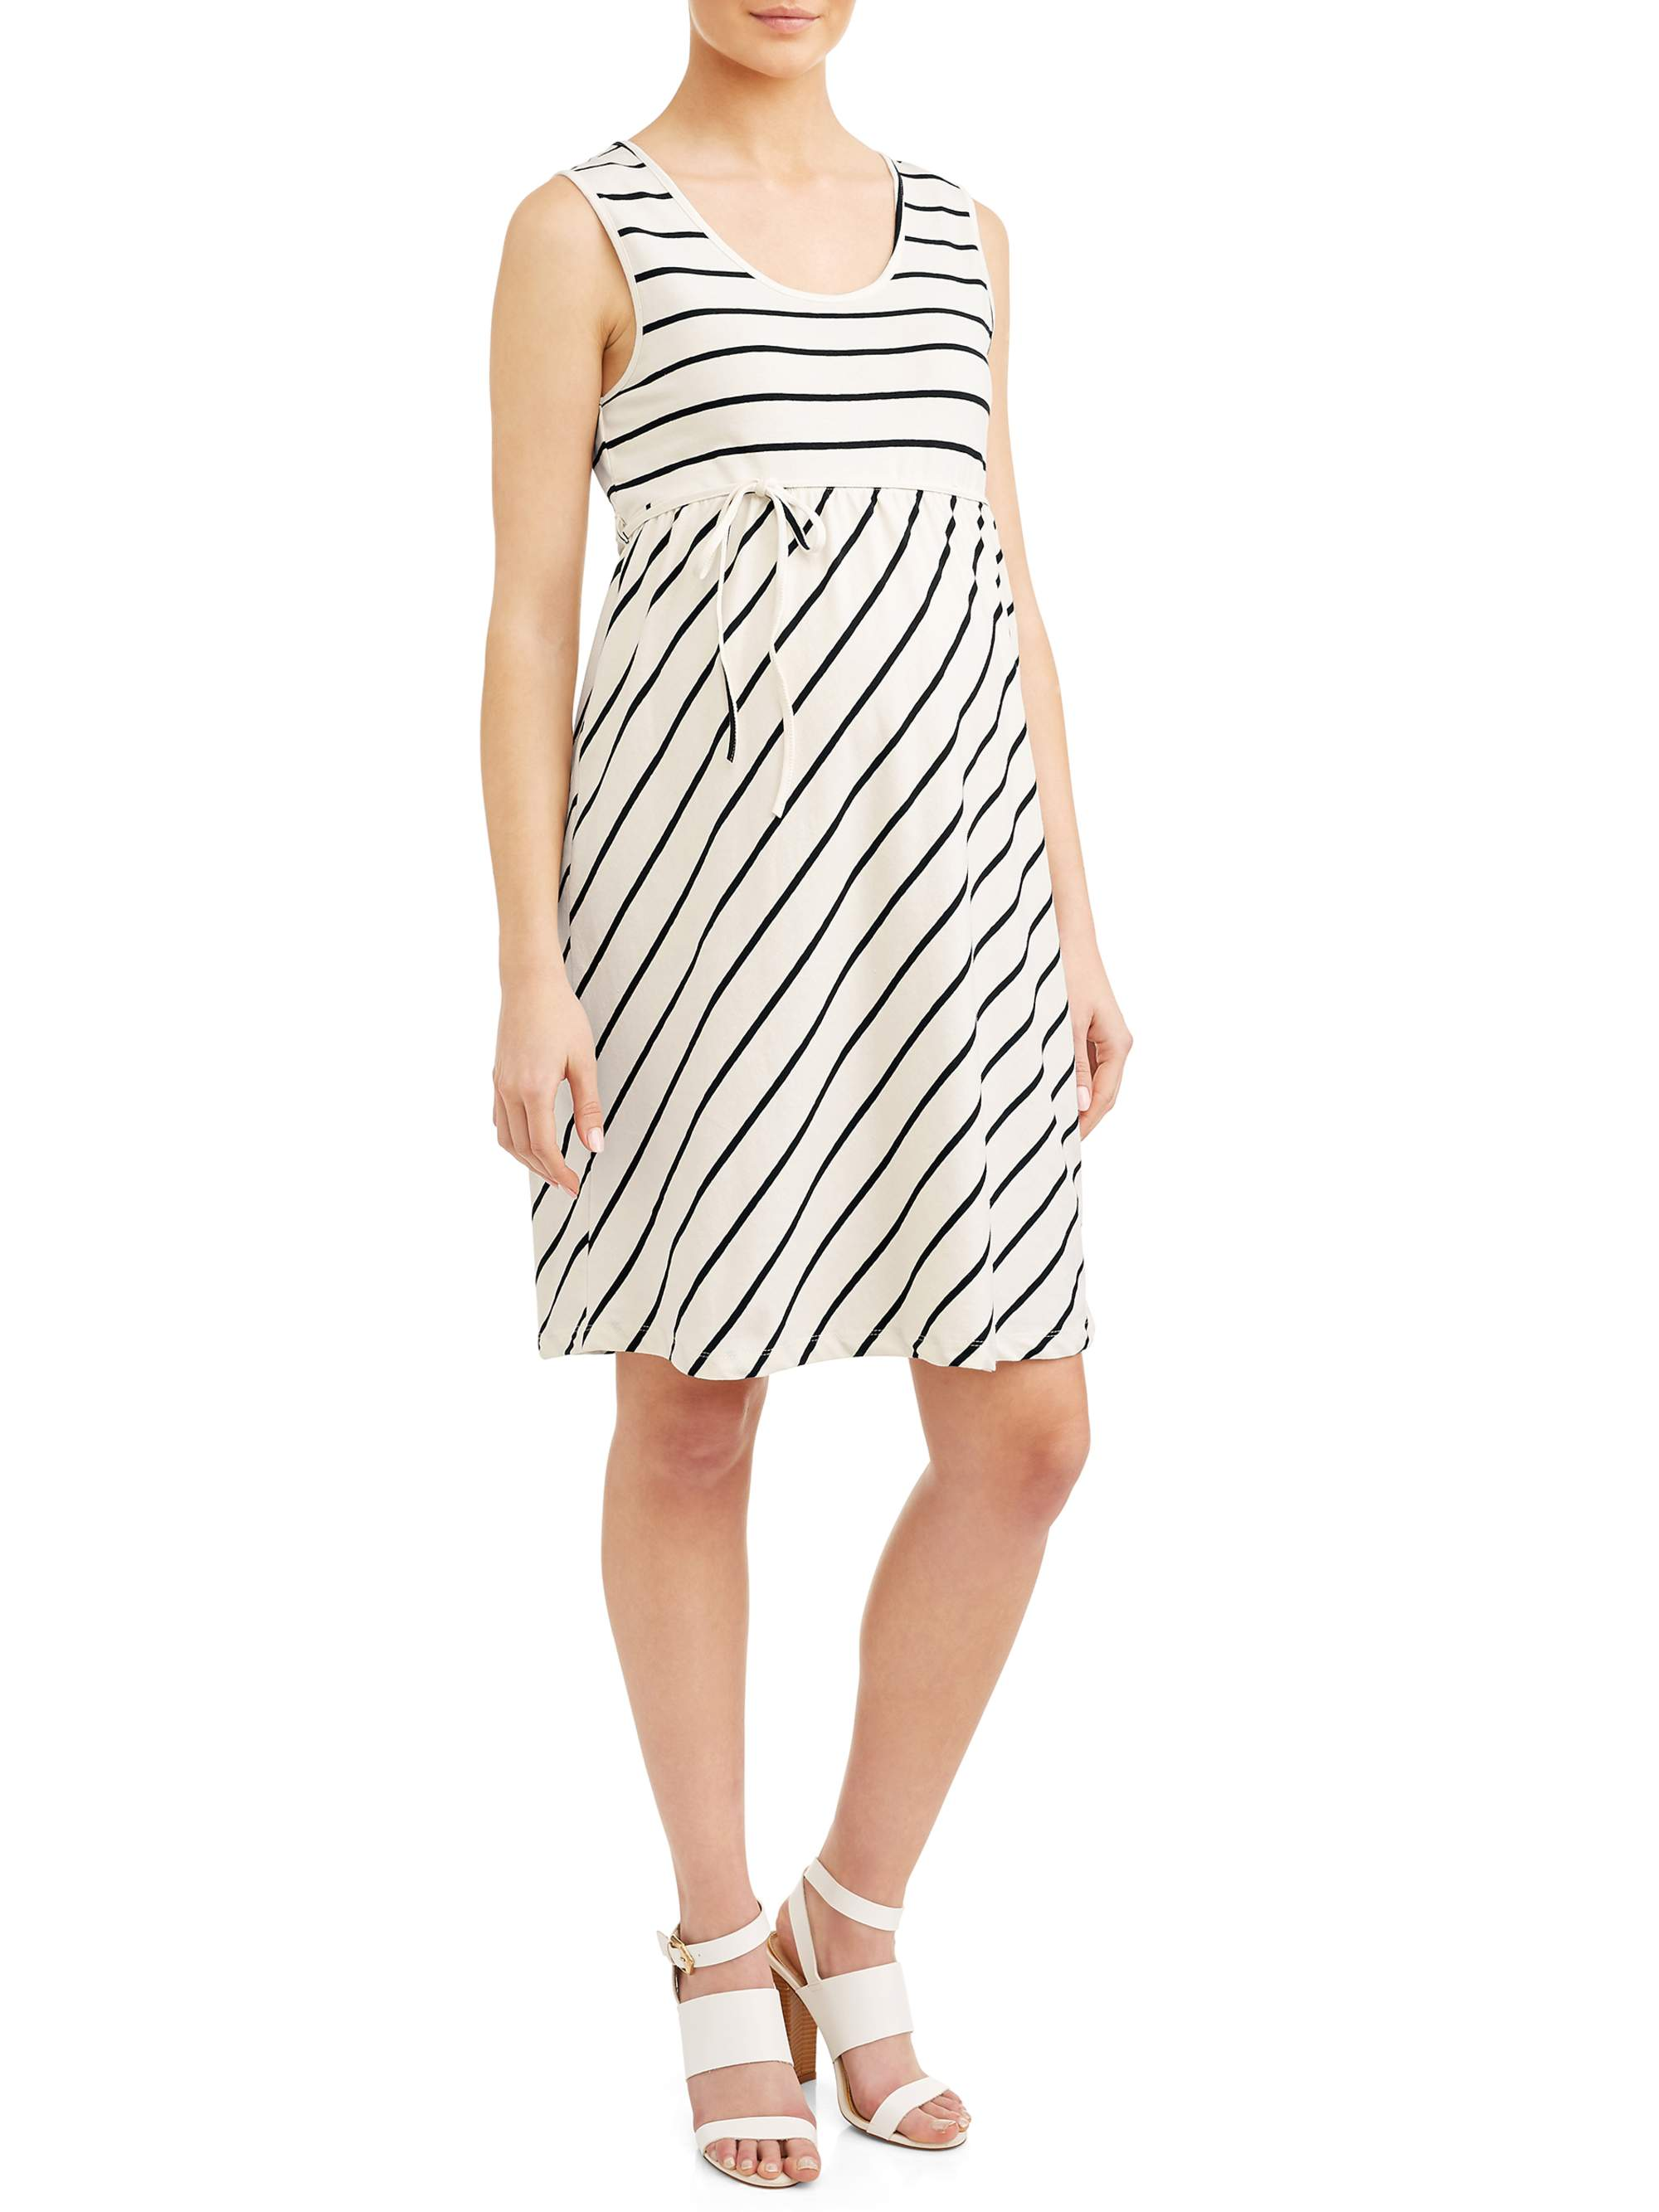 Maternity Stripe Empire Waist Knit Dress - Available in Plus Sizes